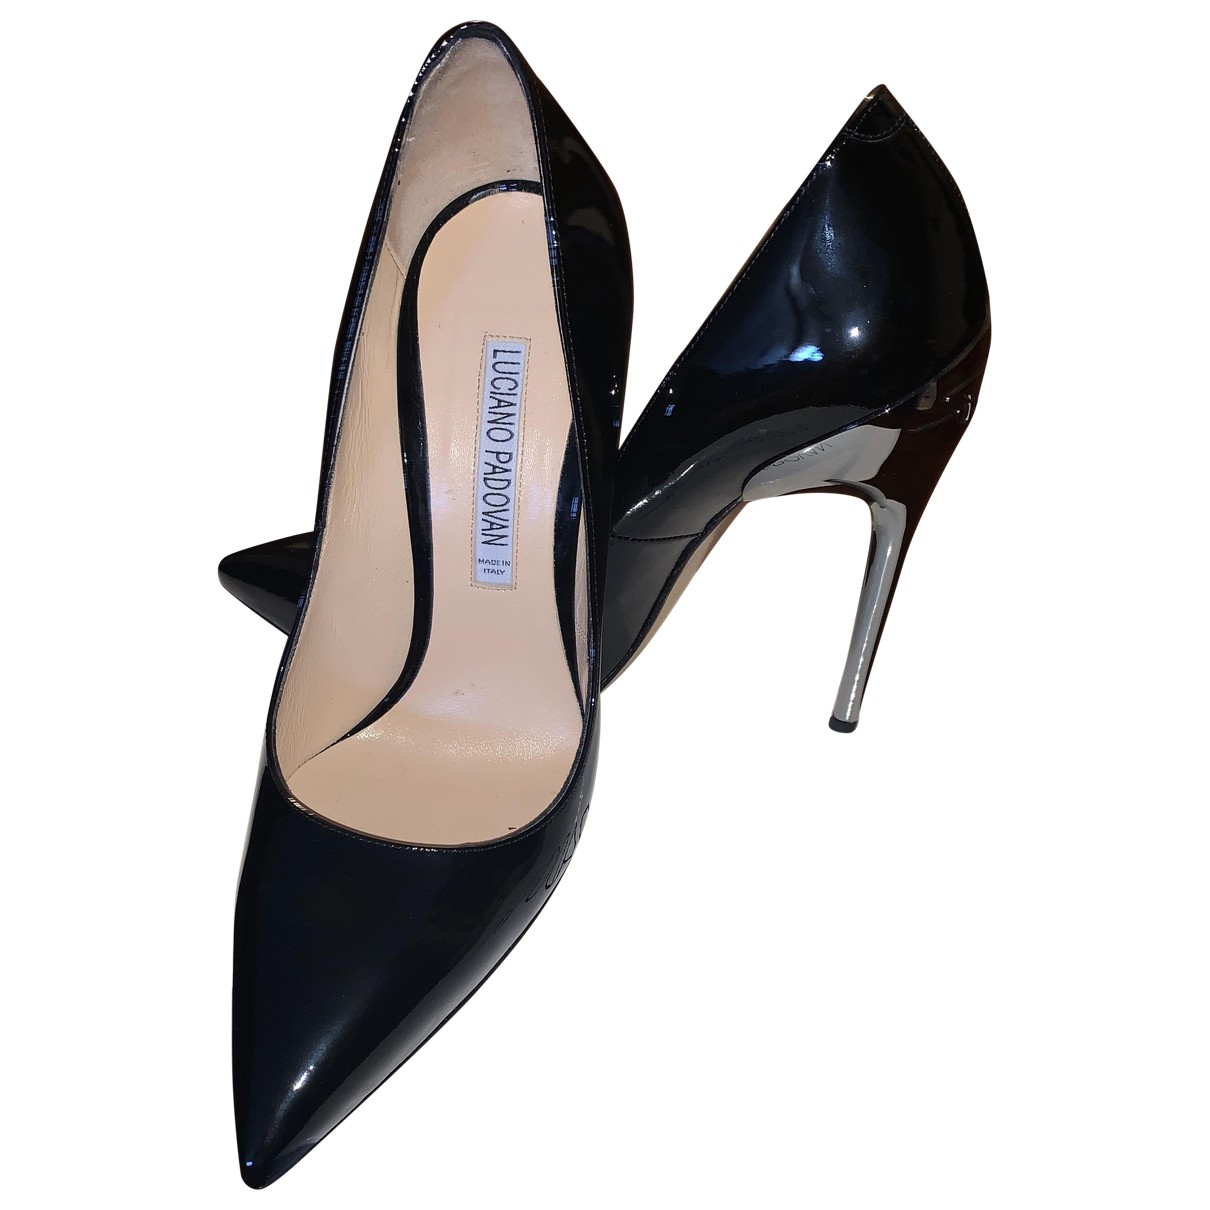 Luciano Padovan \N Black Patent leather Heels for Women 38 EU